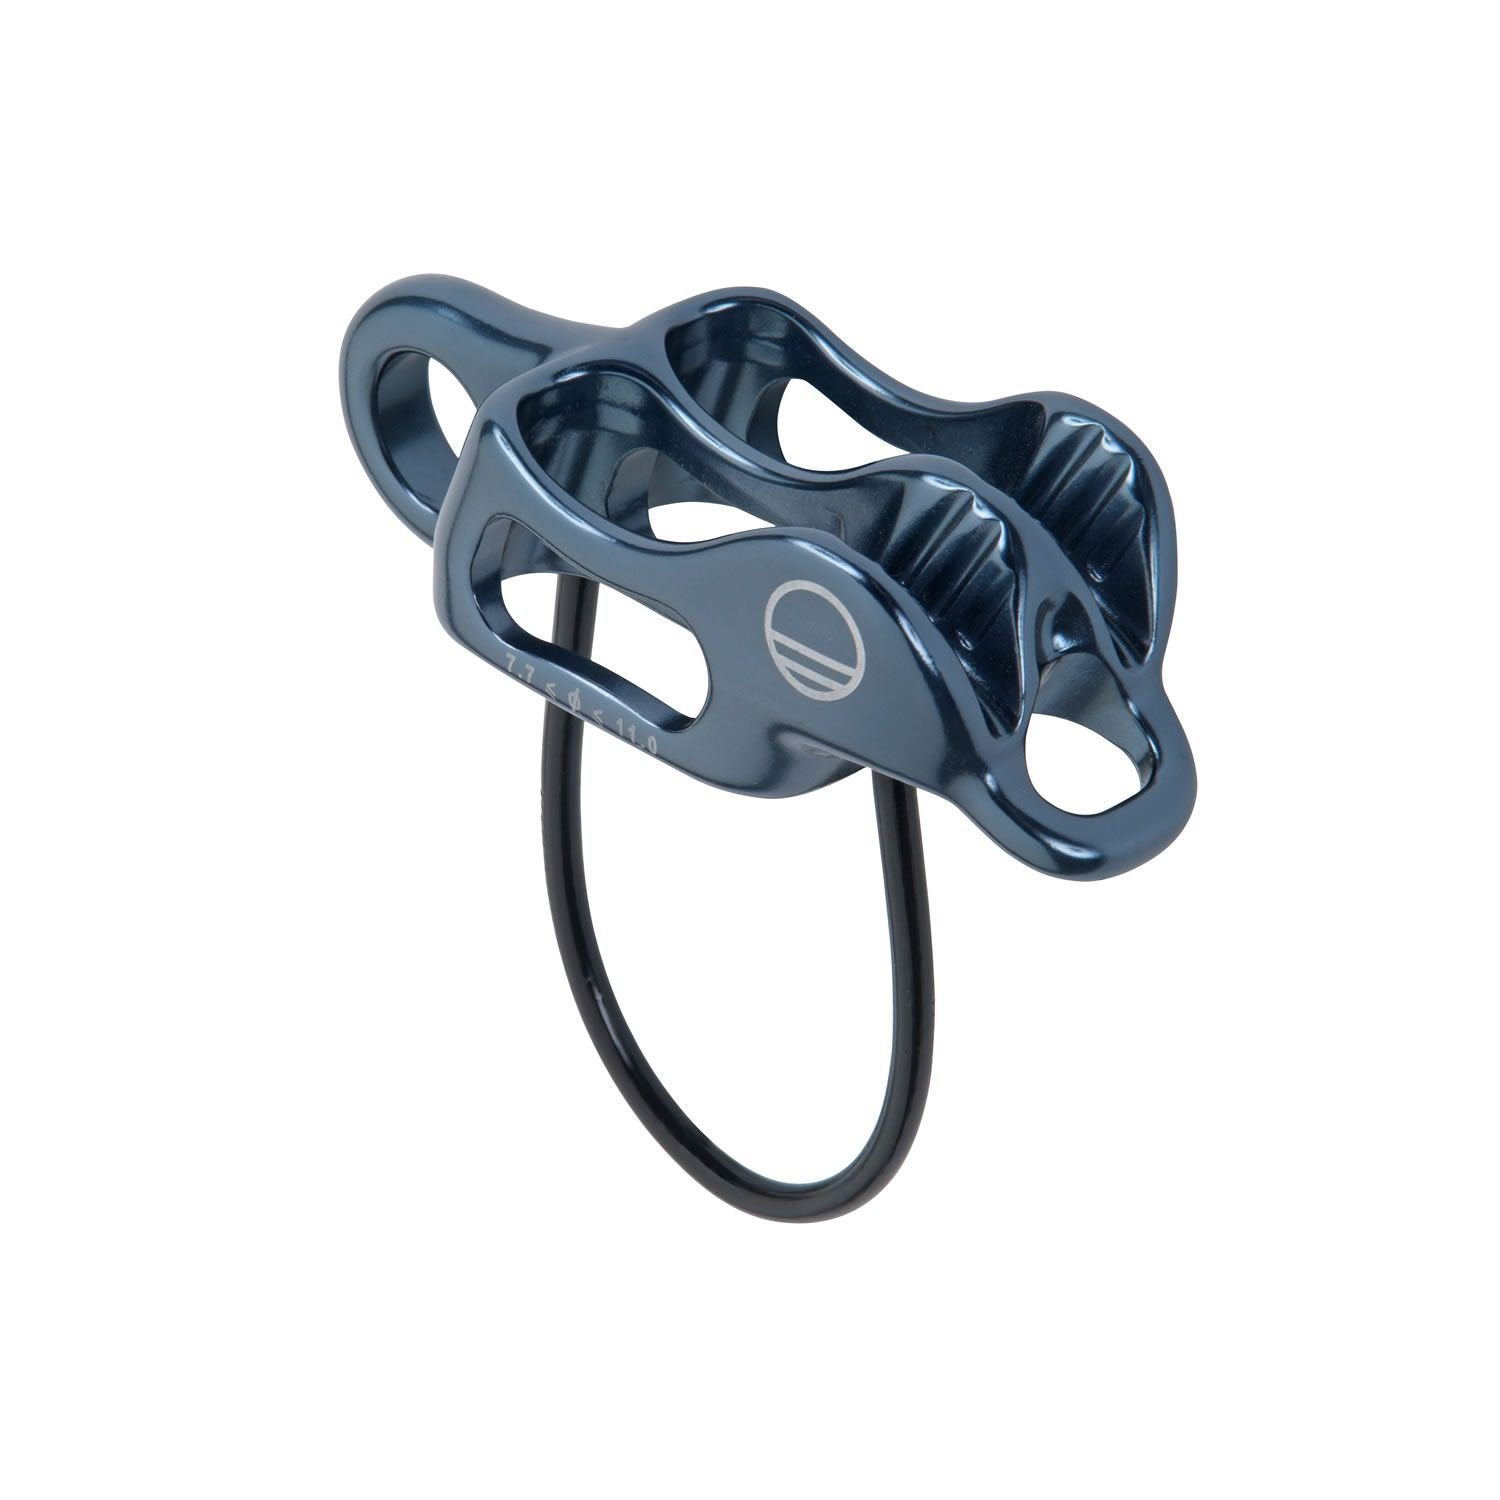 3. Wild Country Pro Guide Belay Device